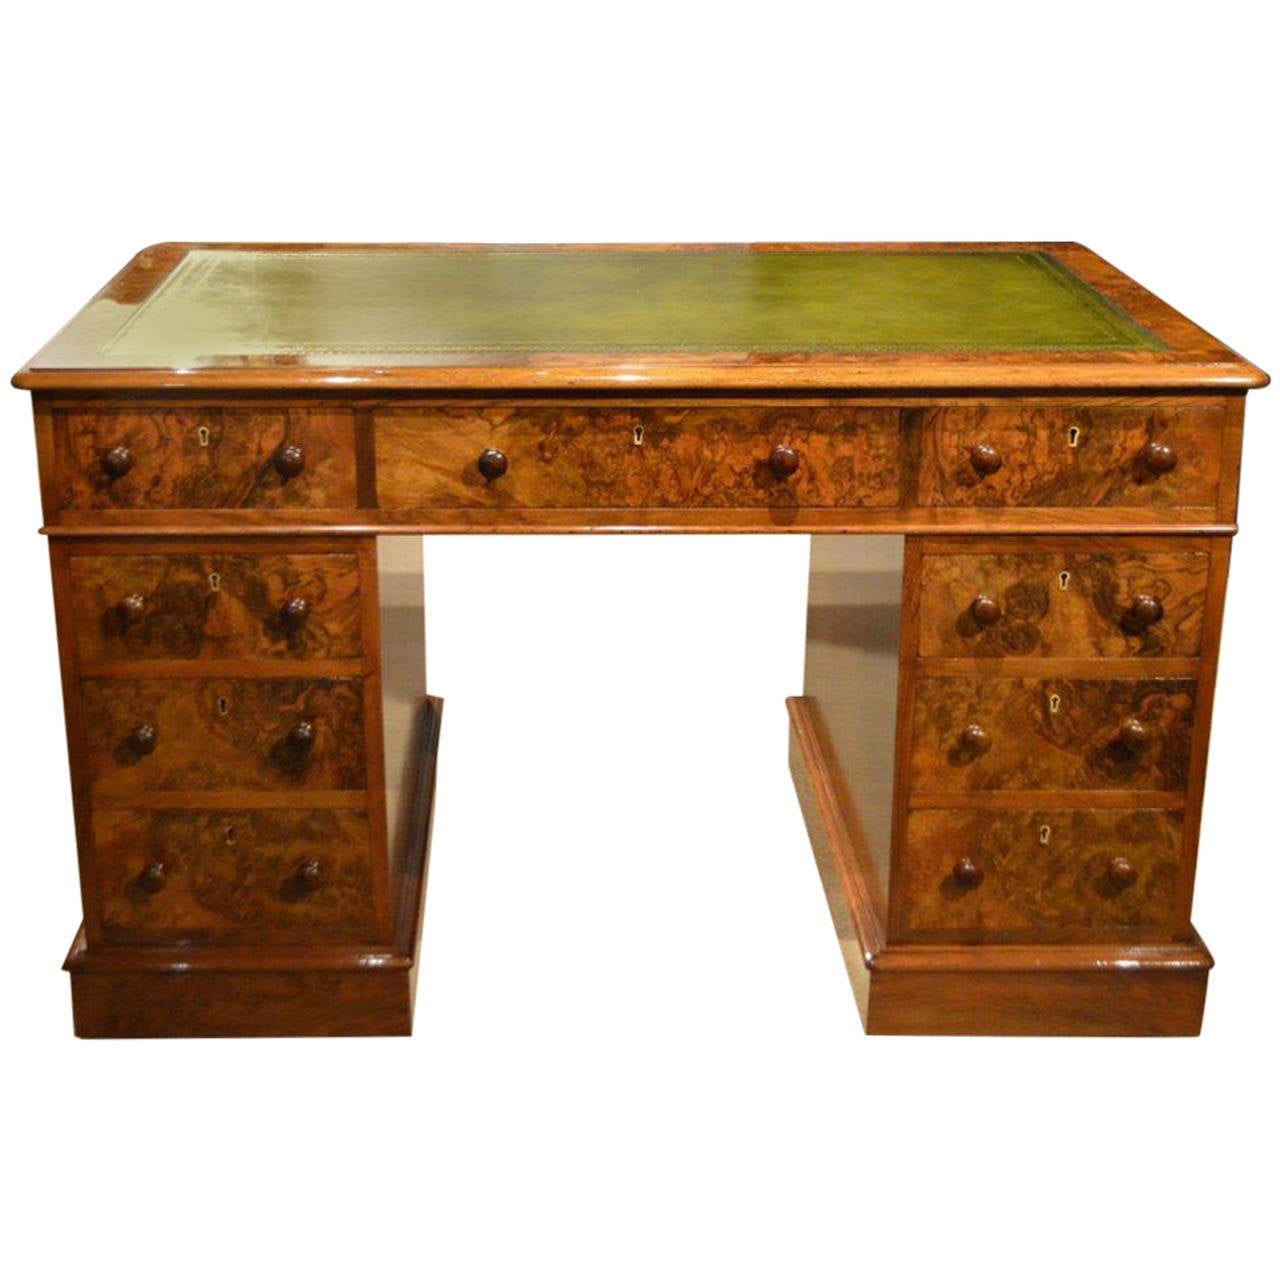 A Beautiful Burr Walnut Victorian Period Antique Pedestal Desk For Sale - A Beautiful Burr Walnut Victorian Period Antique Pedestal Desk At